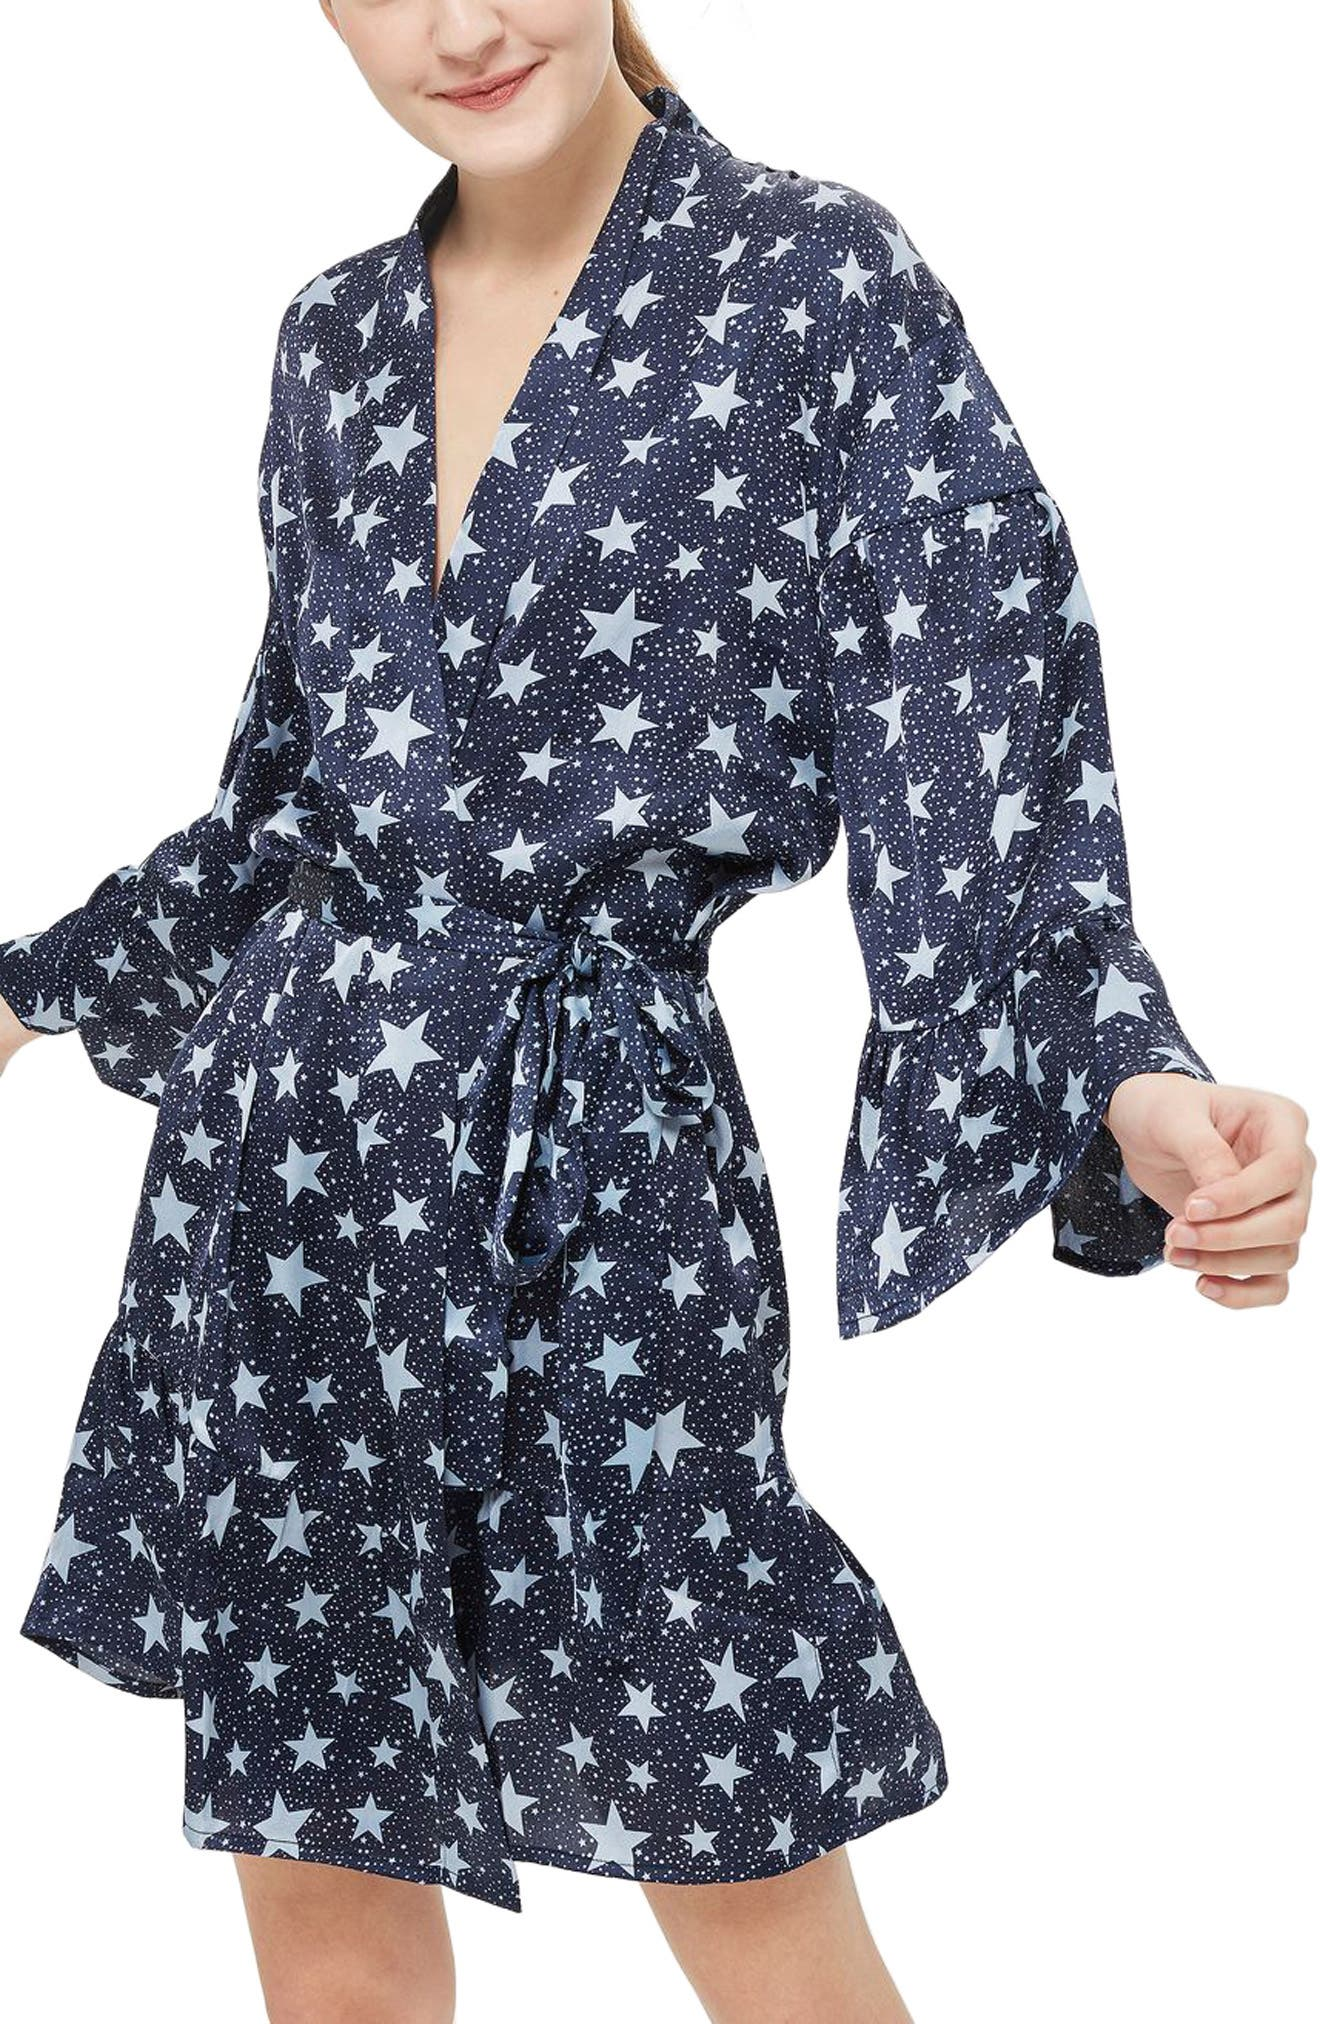 Star Satin Short Robe,                             Main thumbnail 1, color,                             Navy Blue Multi